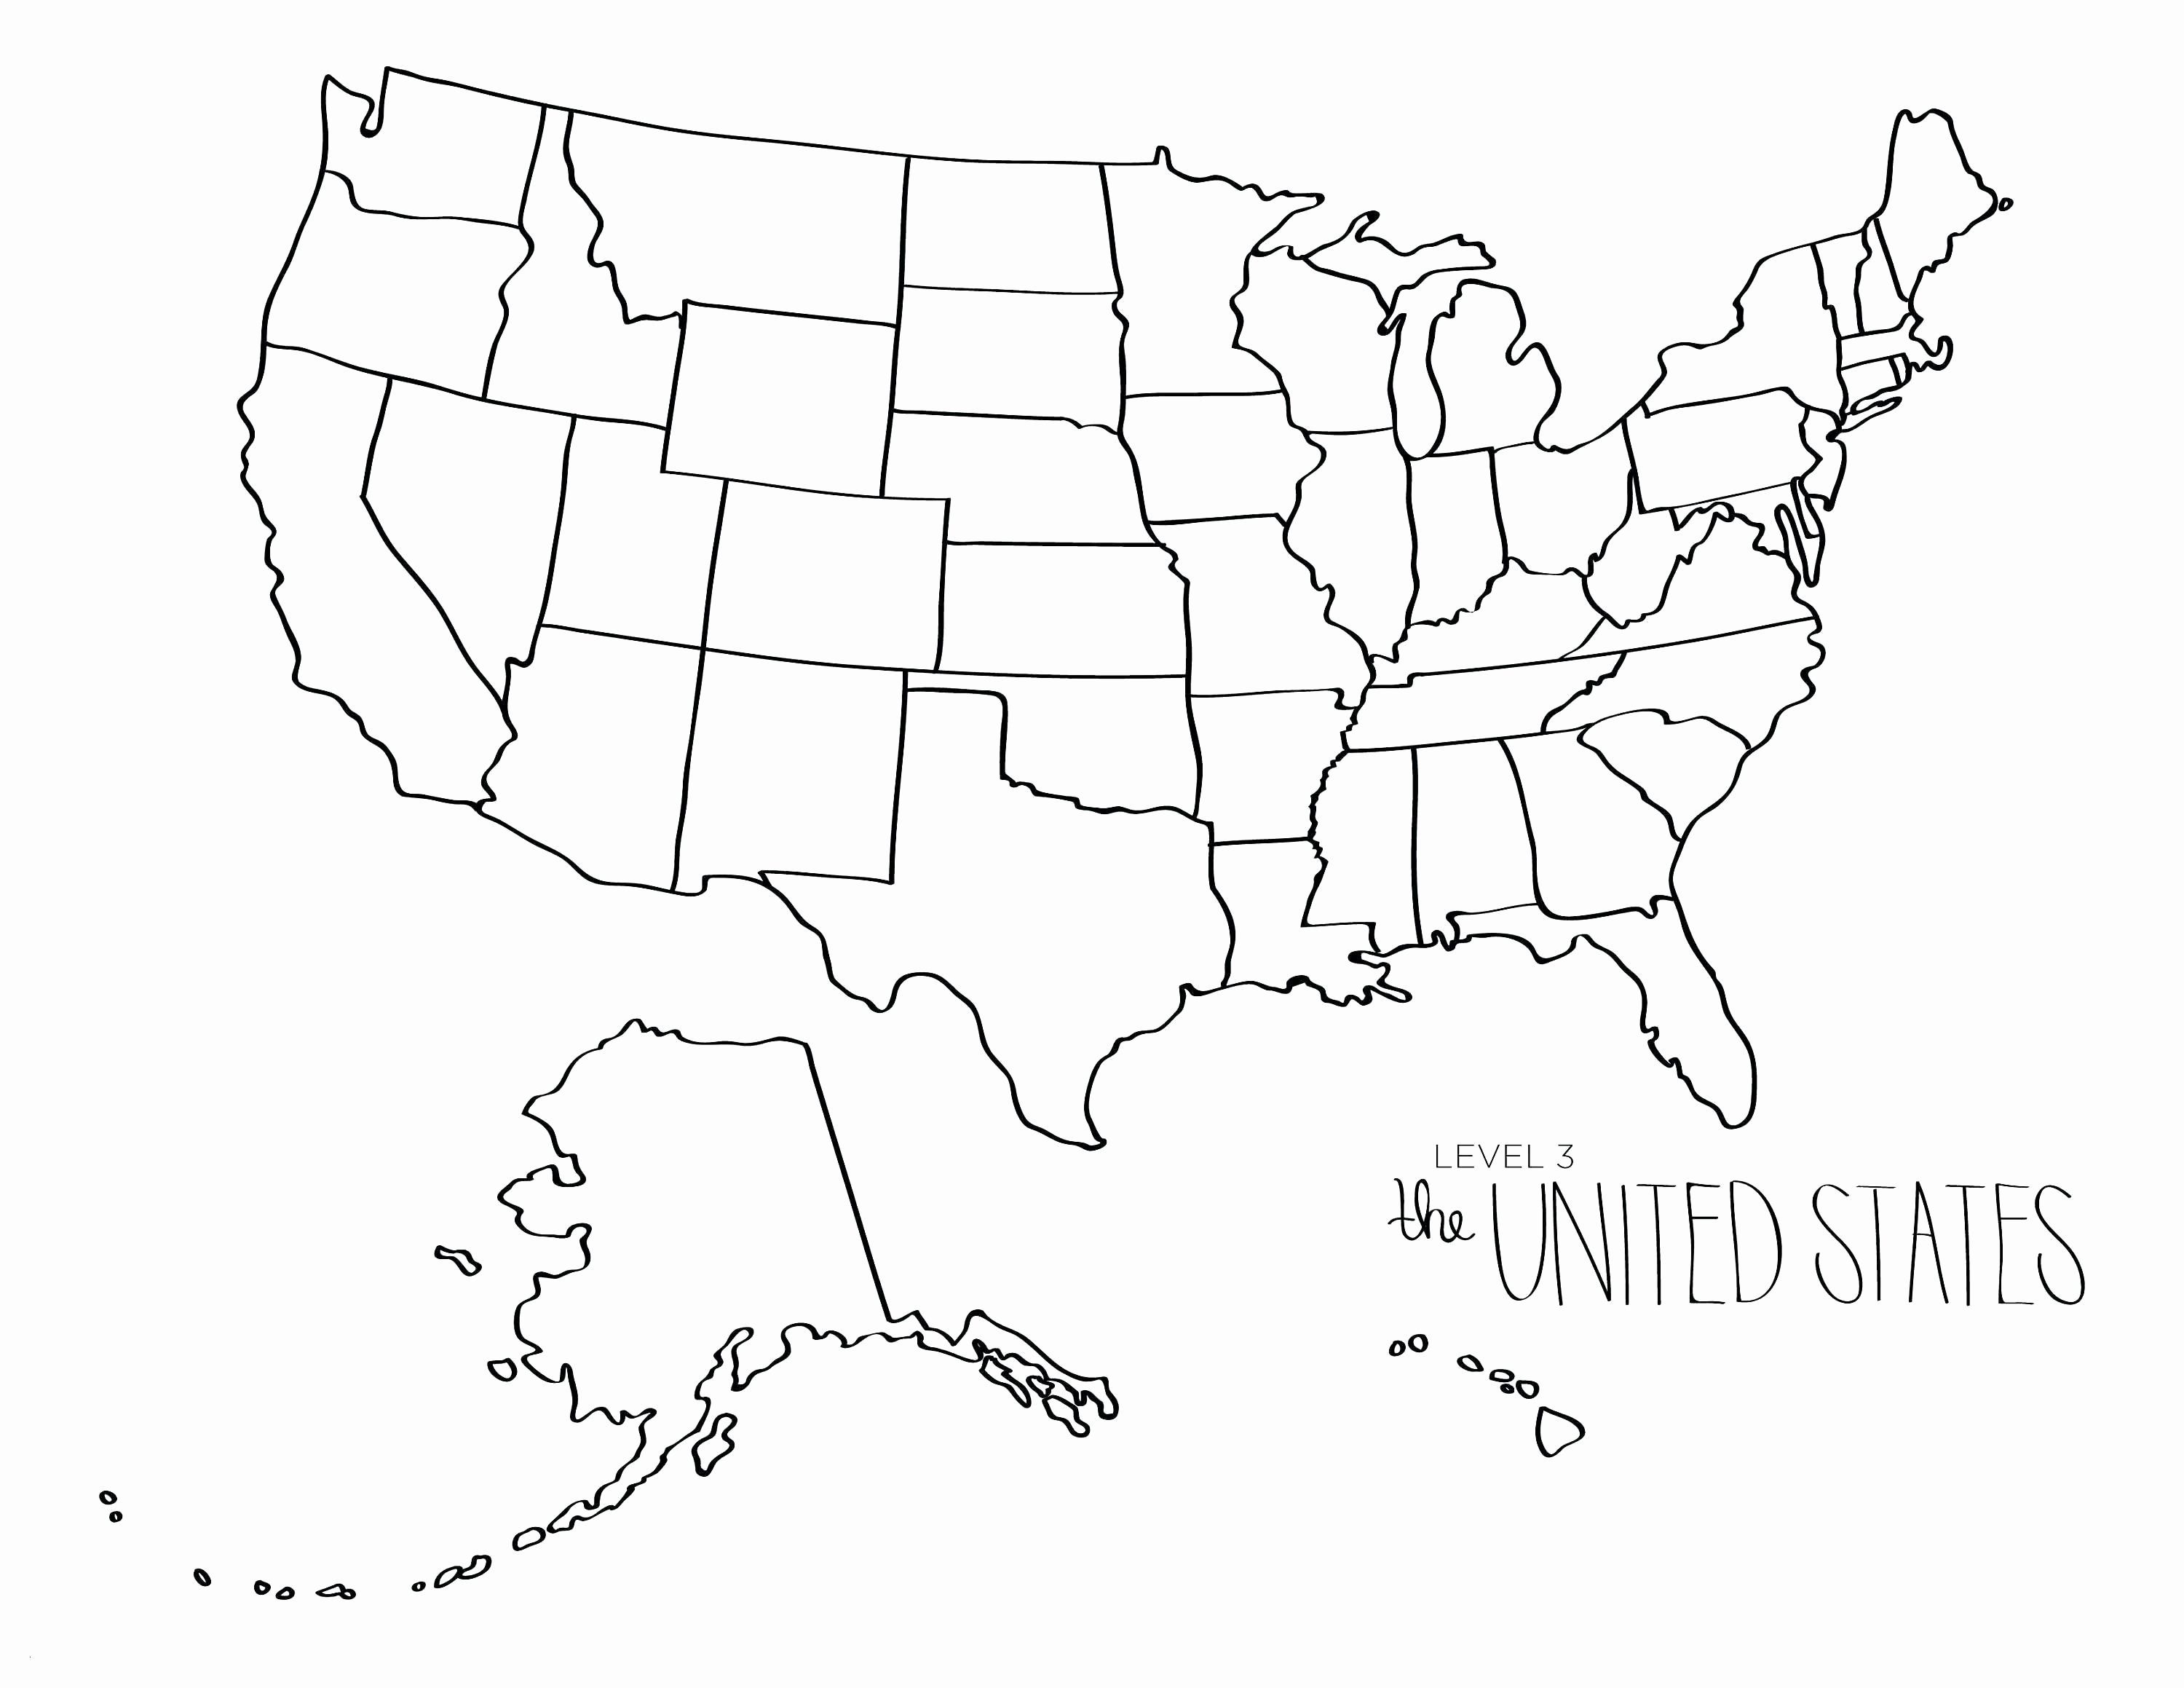 Texas History Coloring Sheets Luxury Connecticut State Flag Coloring Page In 2020 World Map Coloring Page Flag Coloring Pages Coloring Pages